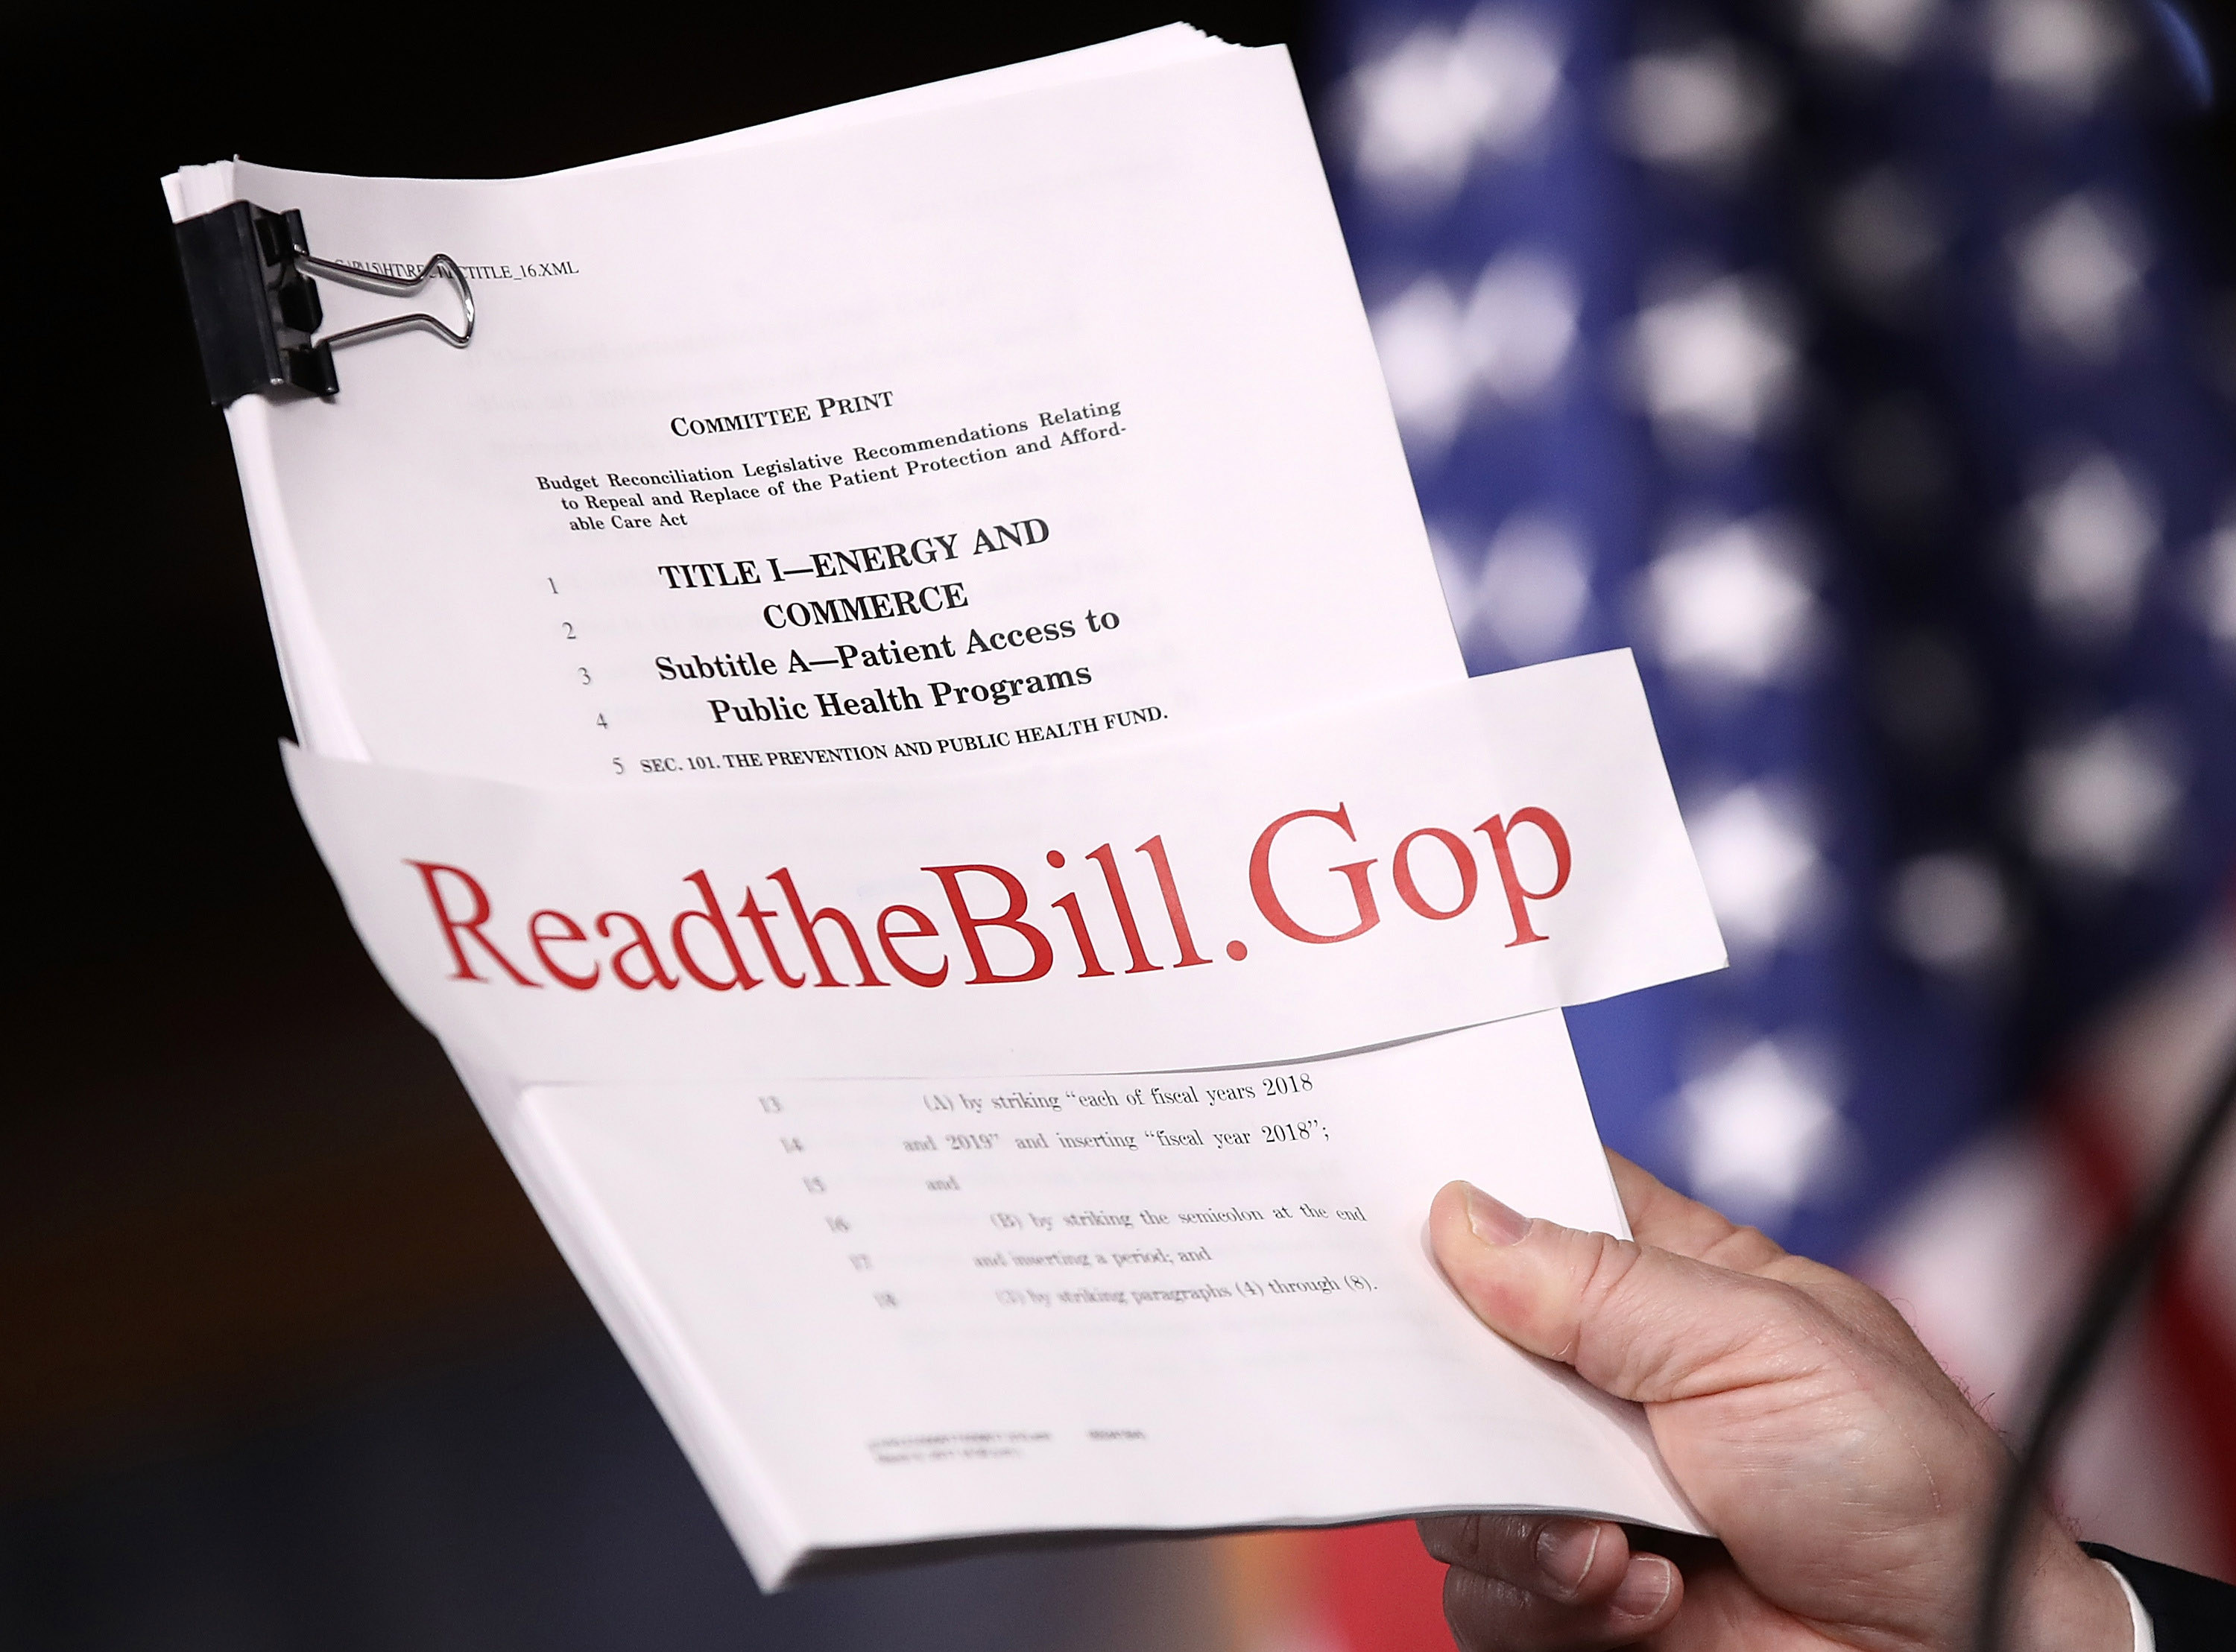 House Energy and Commerce Chairman Greg Walden (R-OR) holds a copy of the newly written American Health Care Act during a press conference at the U.S. Capitol March 7, 2017 in Washington, D.C.  (Getty Images)